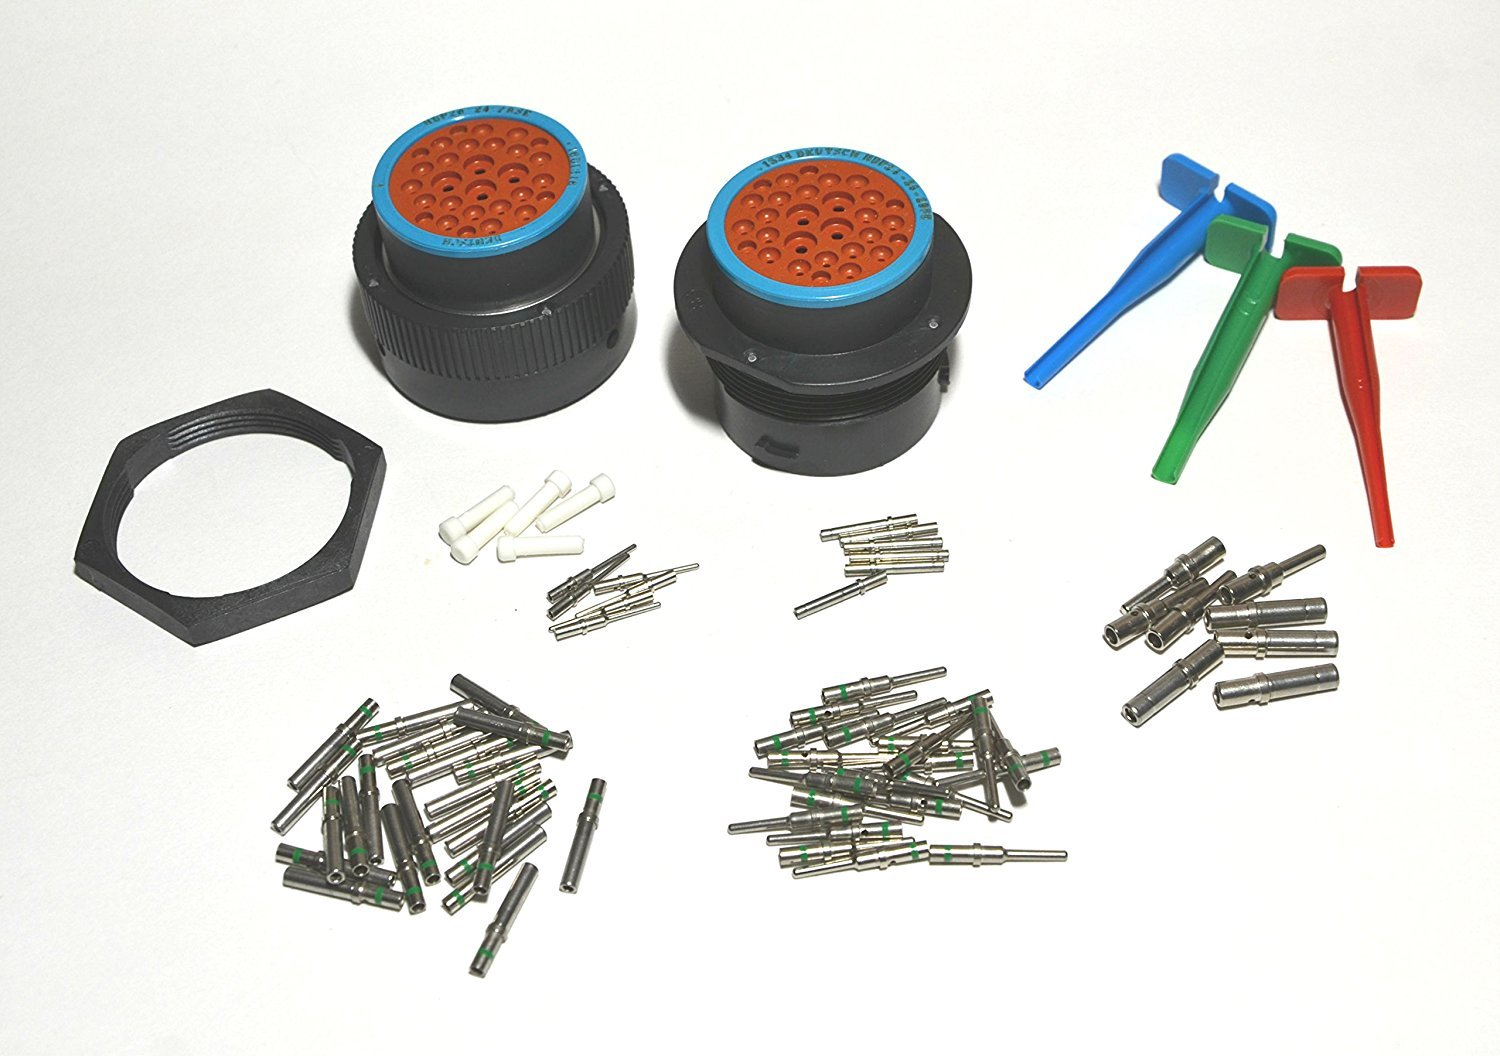 Deutsch HDP20 Bulkhead 29-pin Connector kit, 12-16-20 AWG Solid Contacts HDP29-WNS-121620-KIT